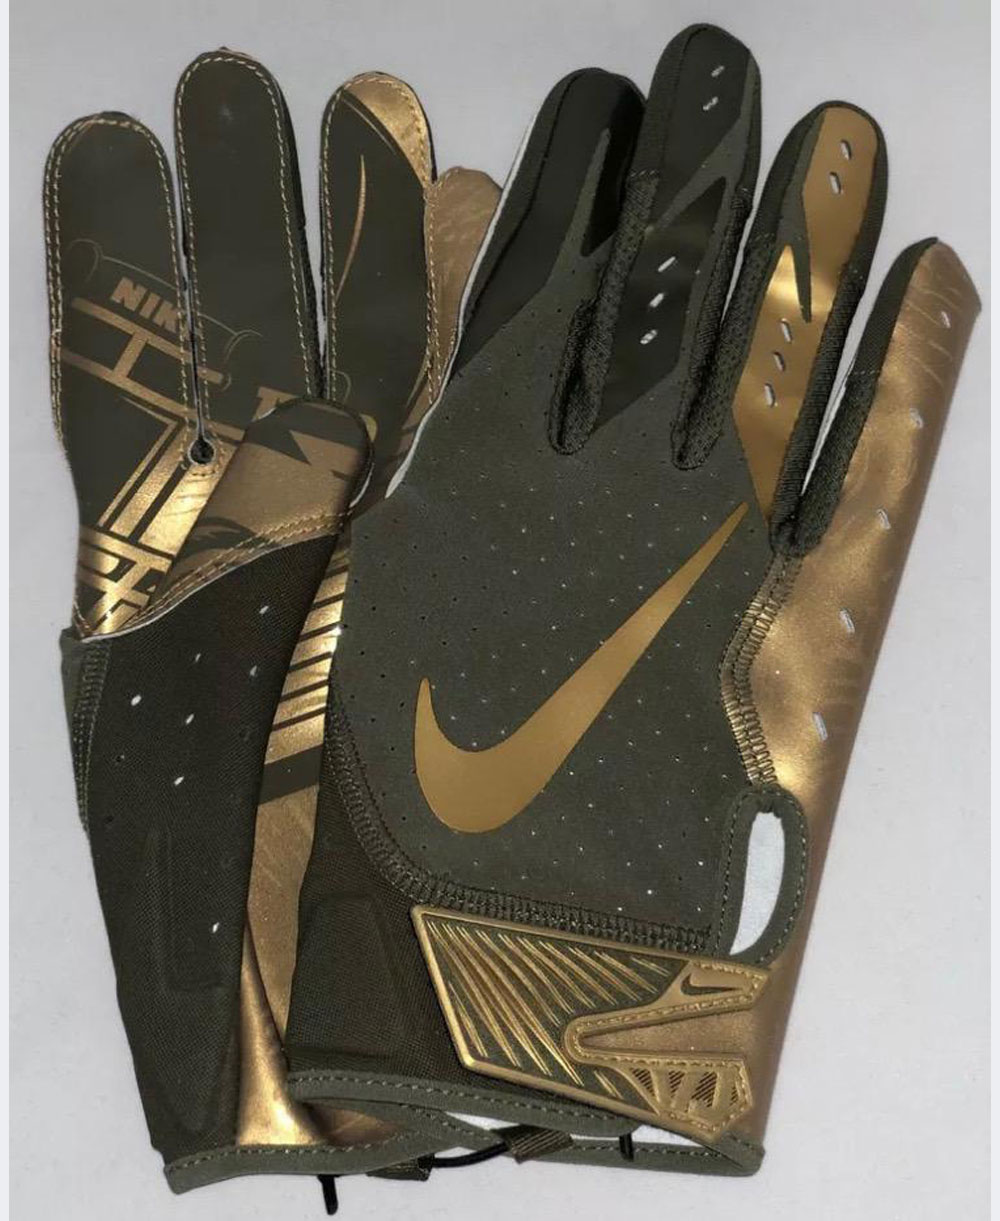 Vapor Jet 5 Herren American Football Handschuhe Medium Olive/Metallic Gold